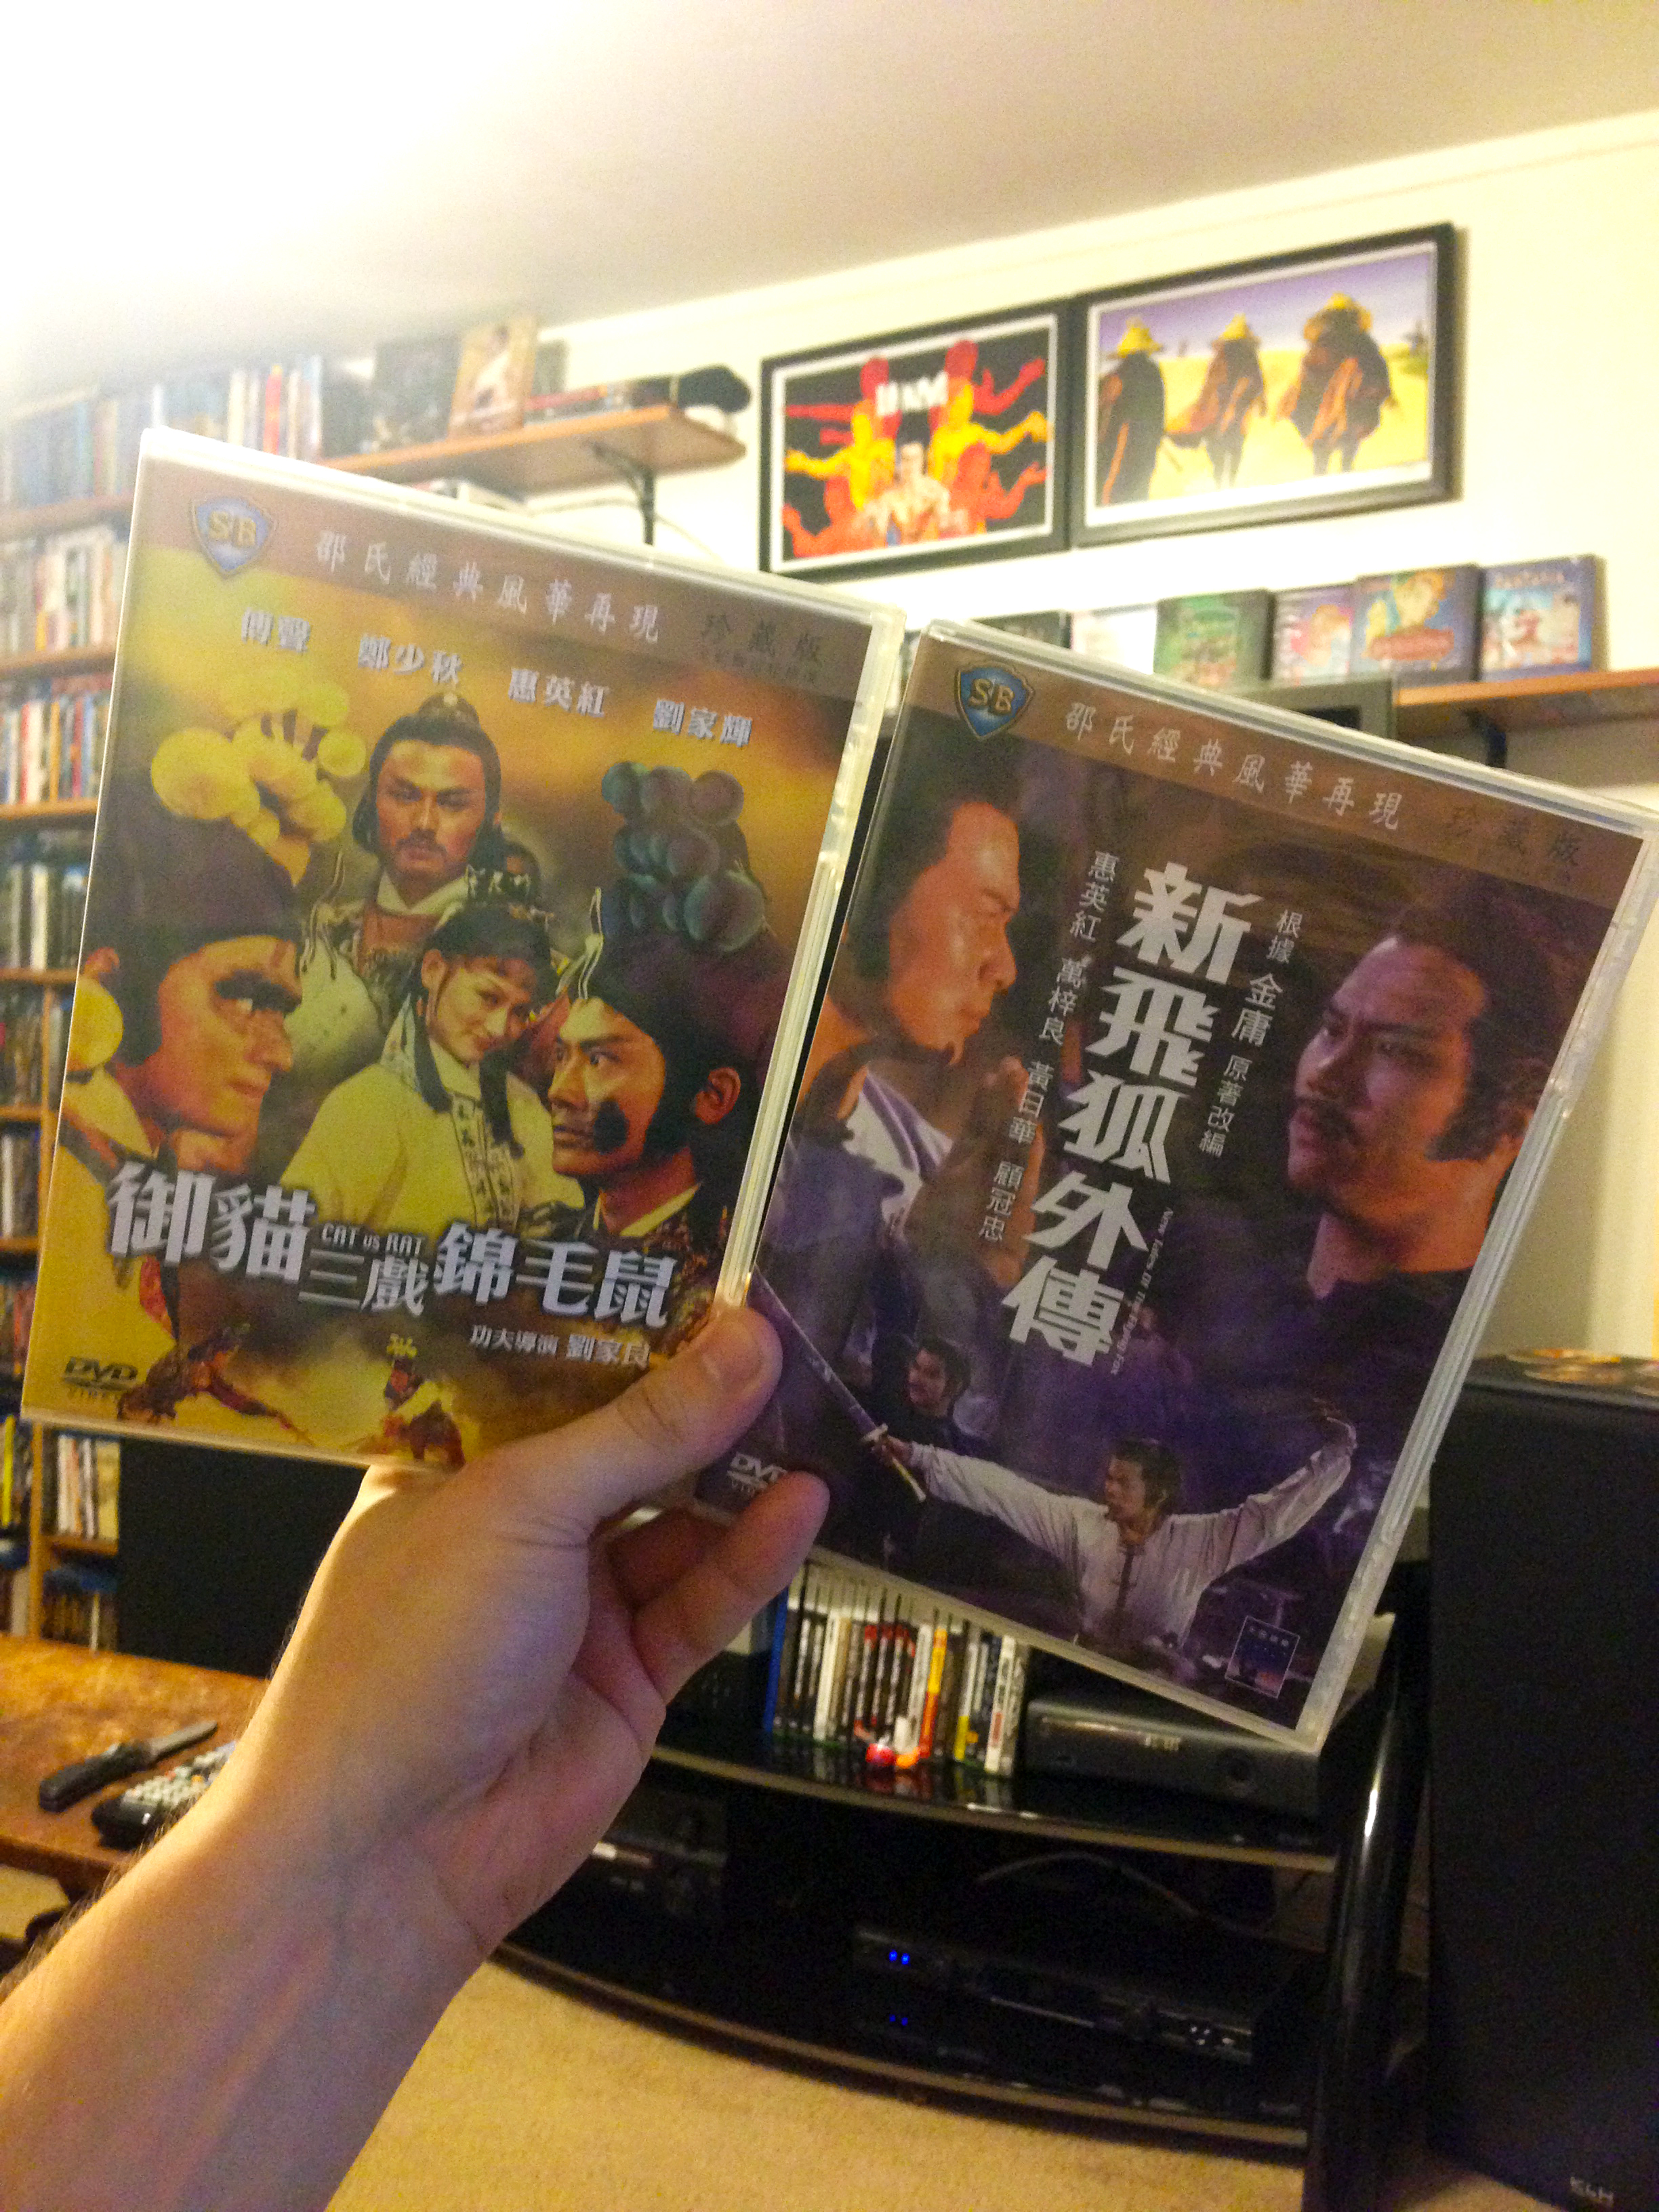 Want Top Buy Shaw Brothers DVDs? Check this out